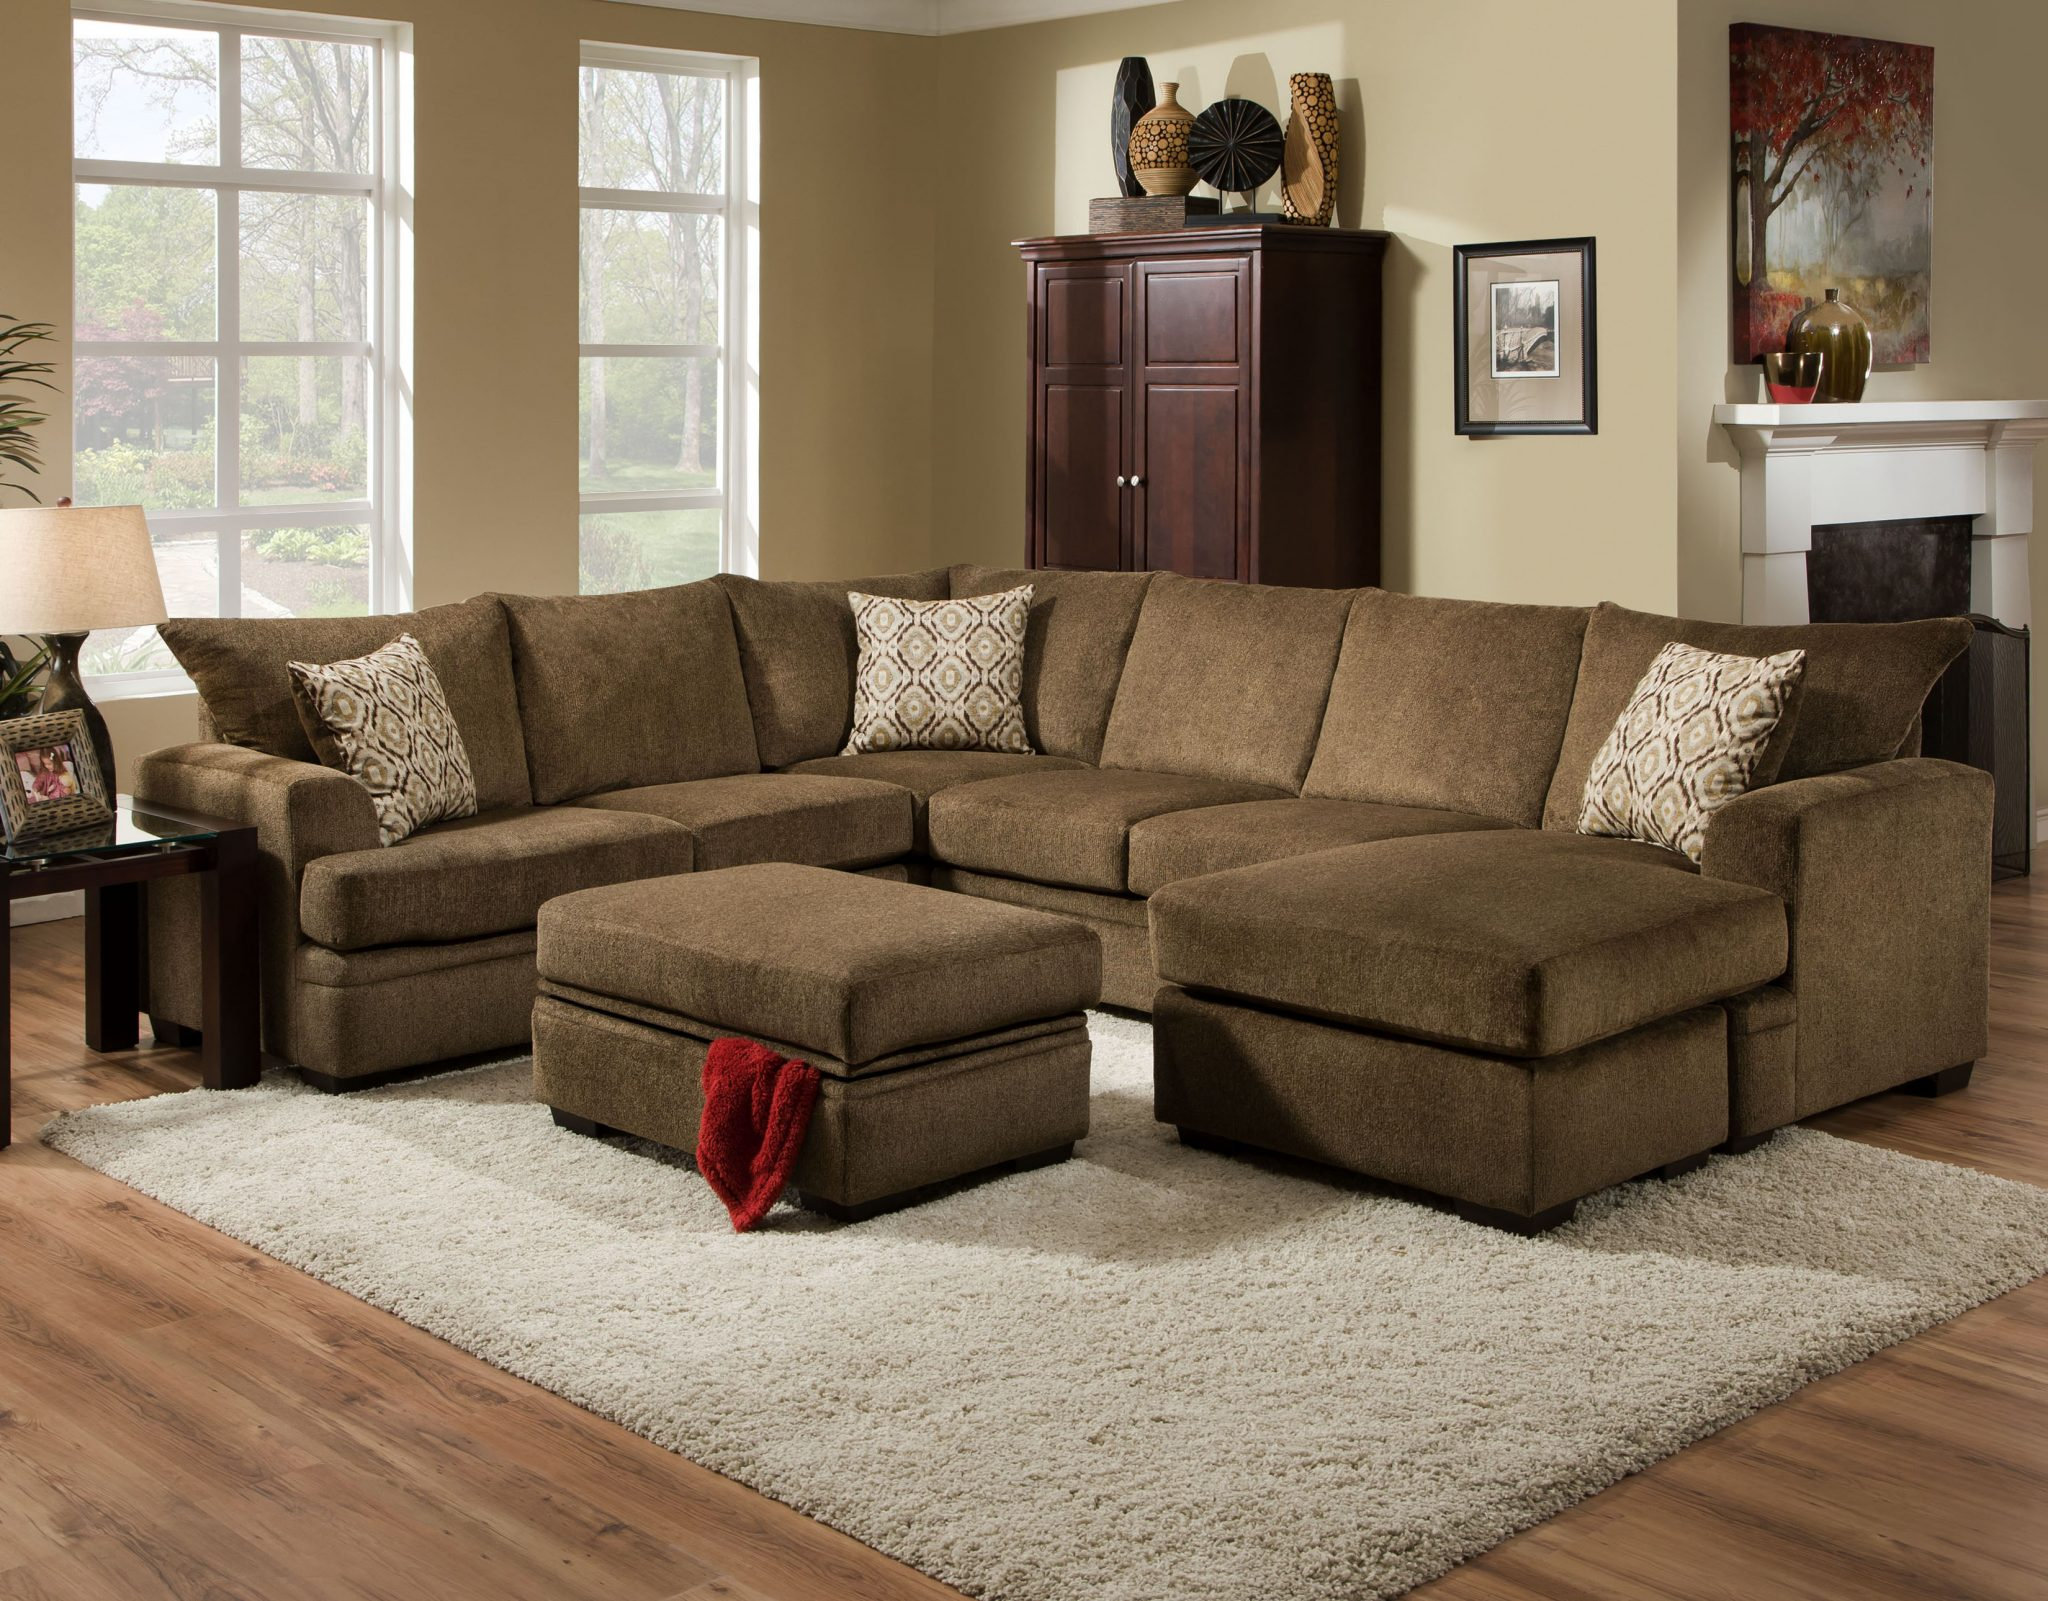 Leather Couch Furniture Store